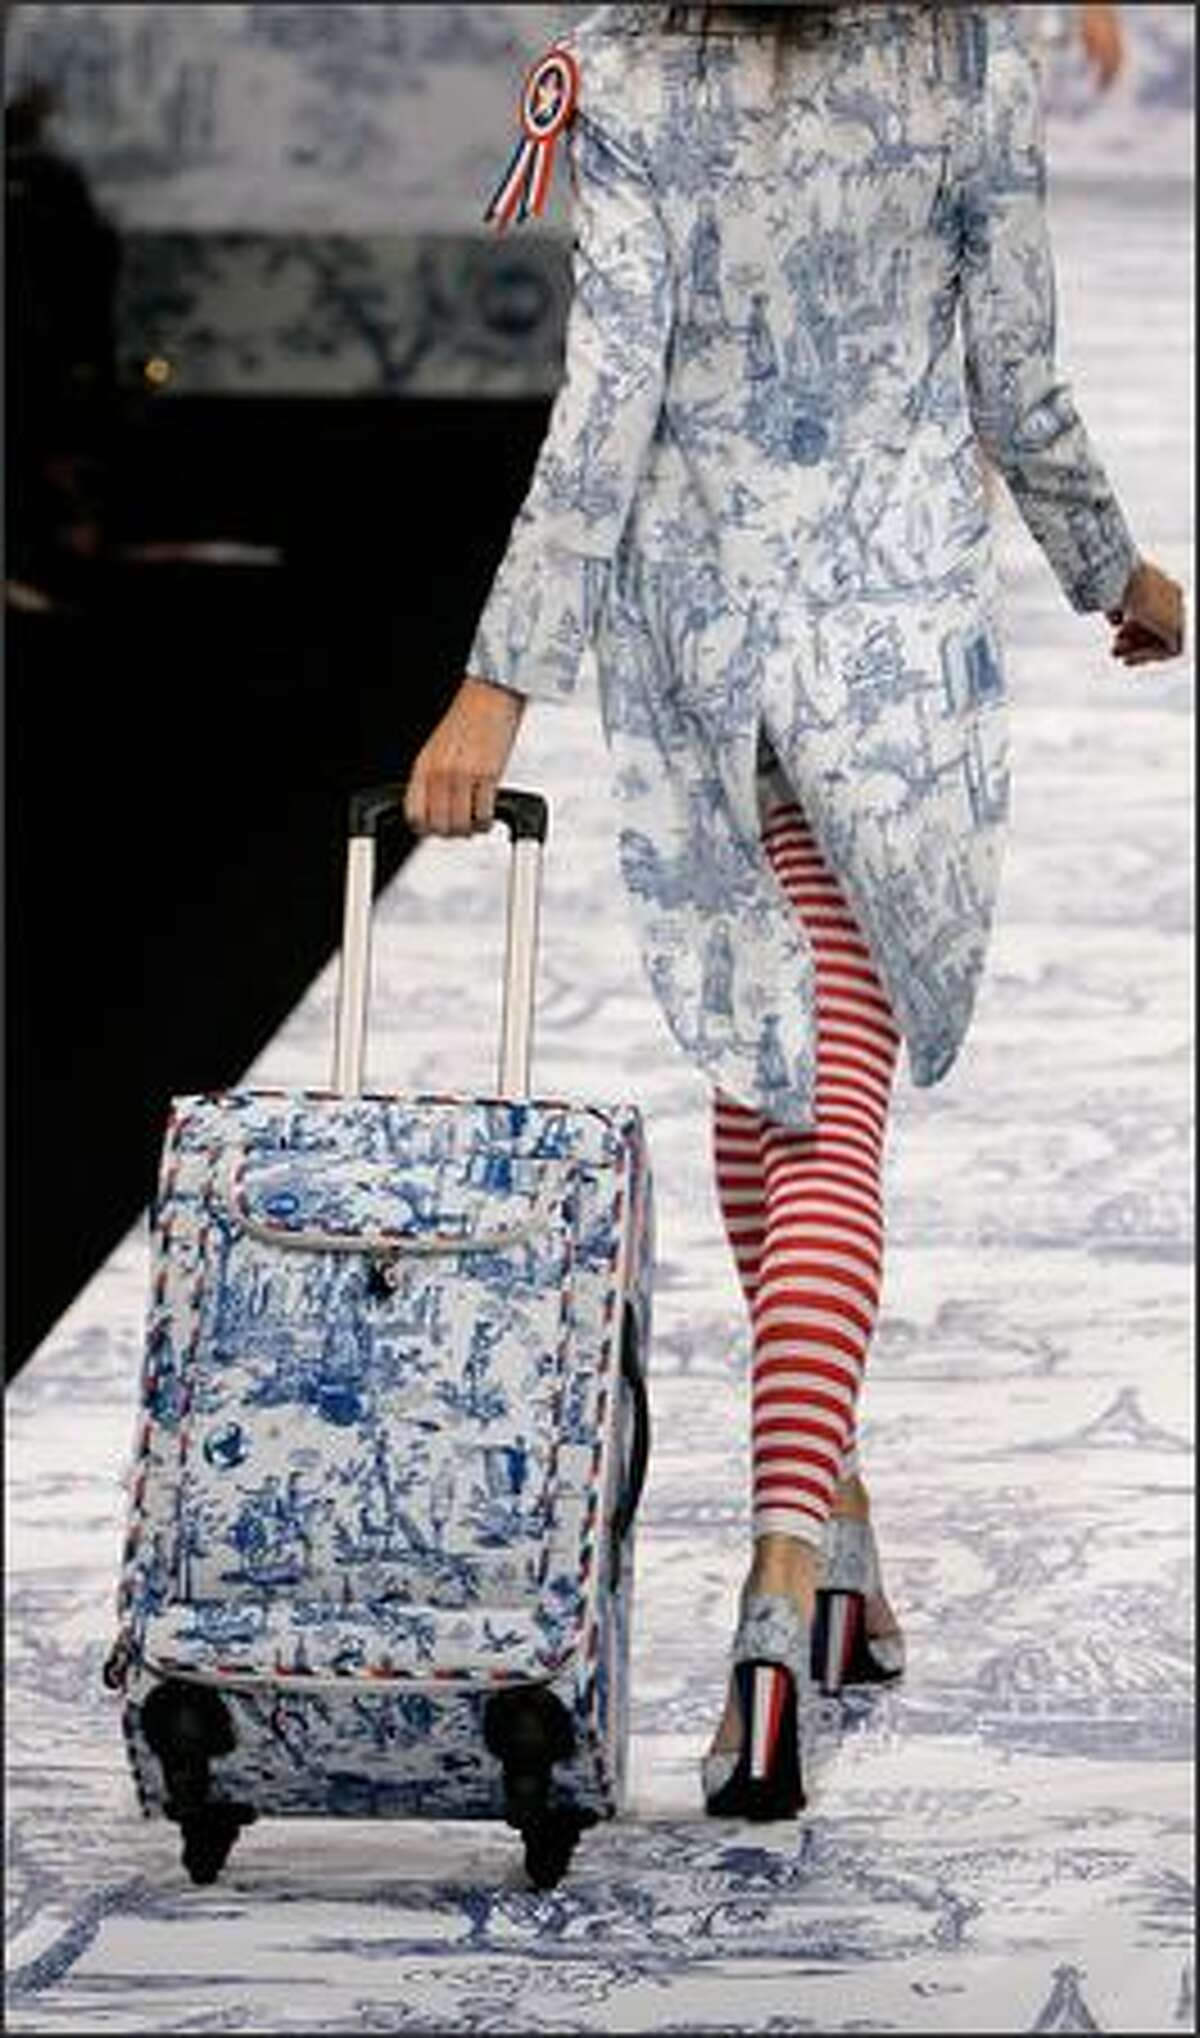 A model presents a creation designed by French fashion designer Jean-Charles de Castelbajac for the presentation of his Spring-summer 2007 ready-to-wear collection, Friday Oct. 6, 2006 in Paris. (AP Photo/Jacques Brinon)